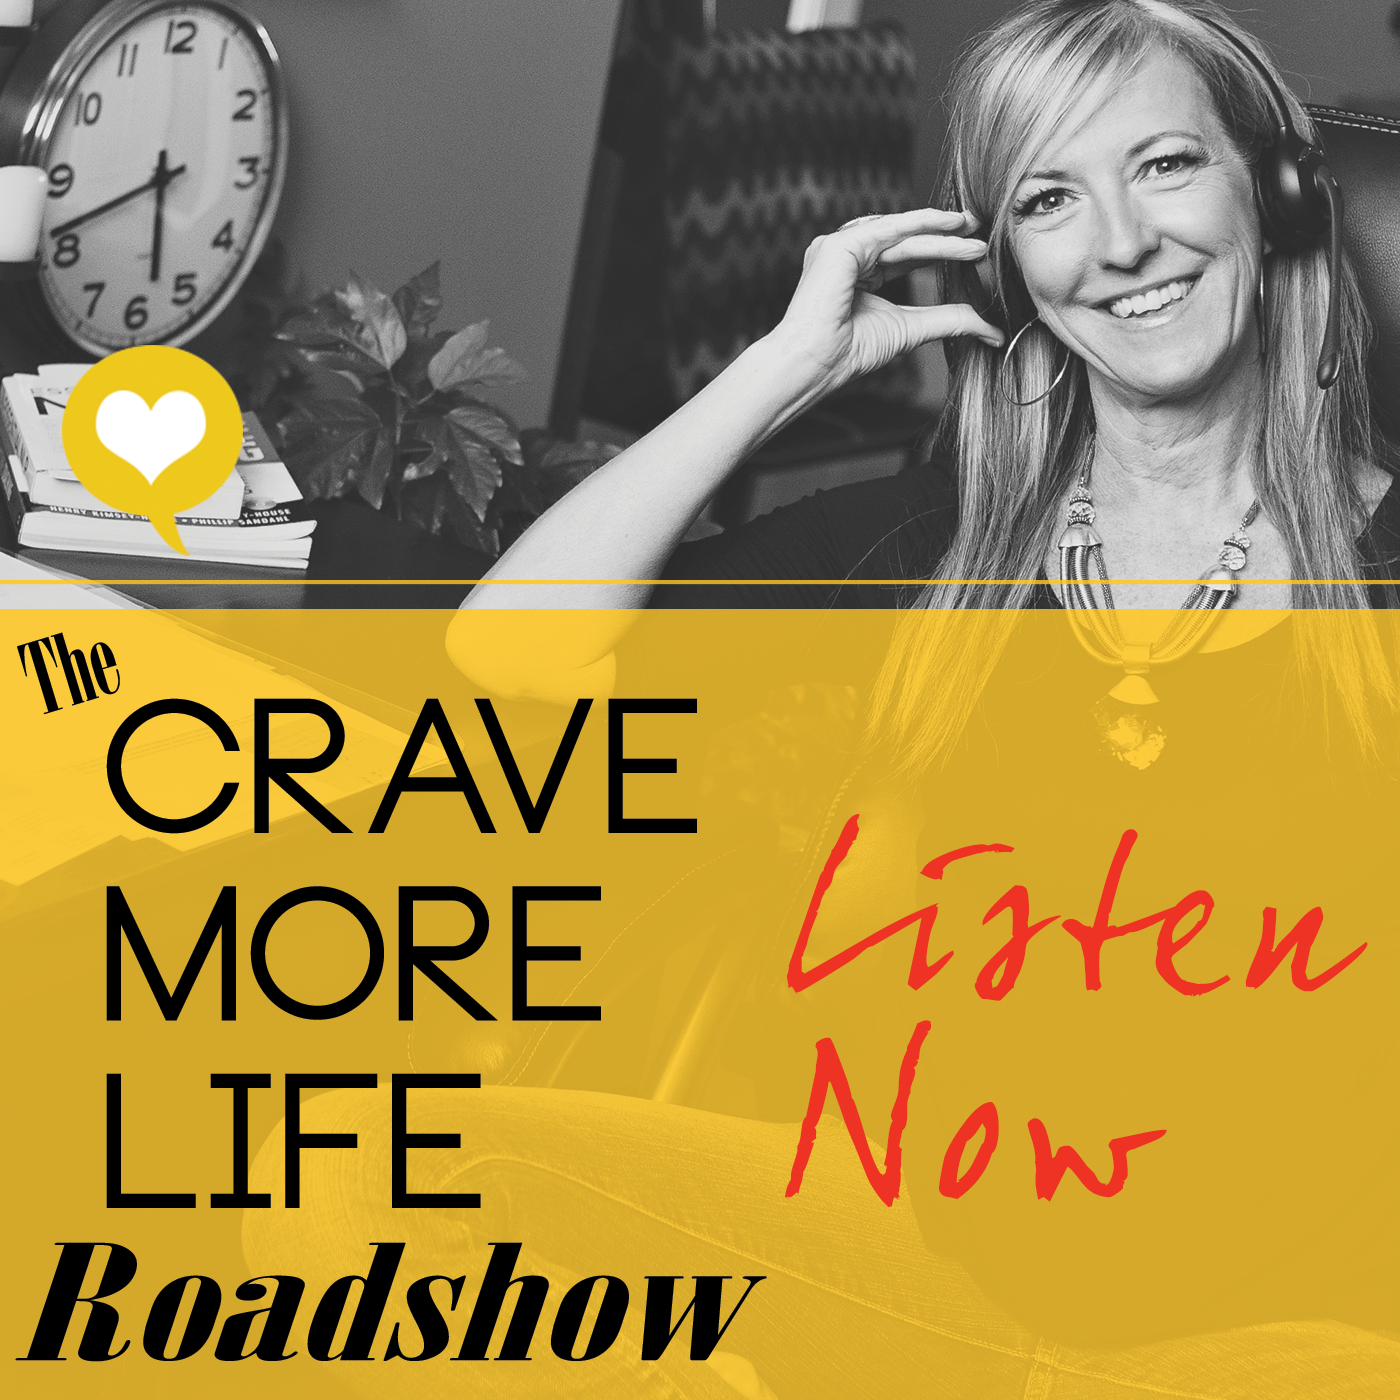 The Crave More Life Roadshow